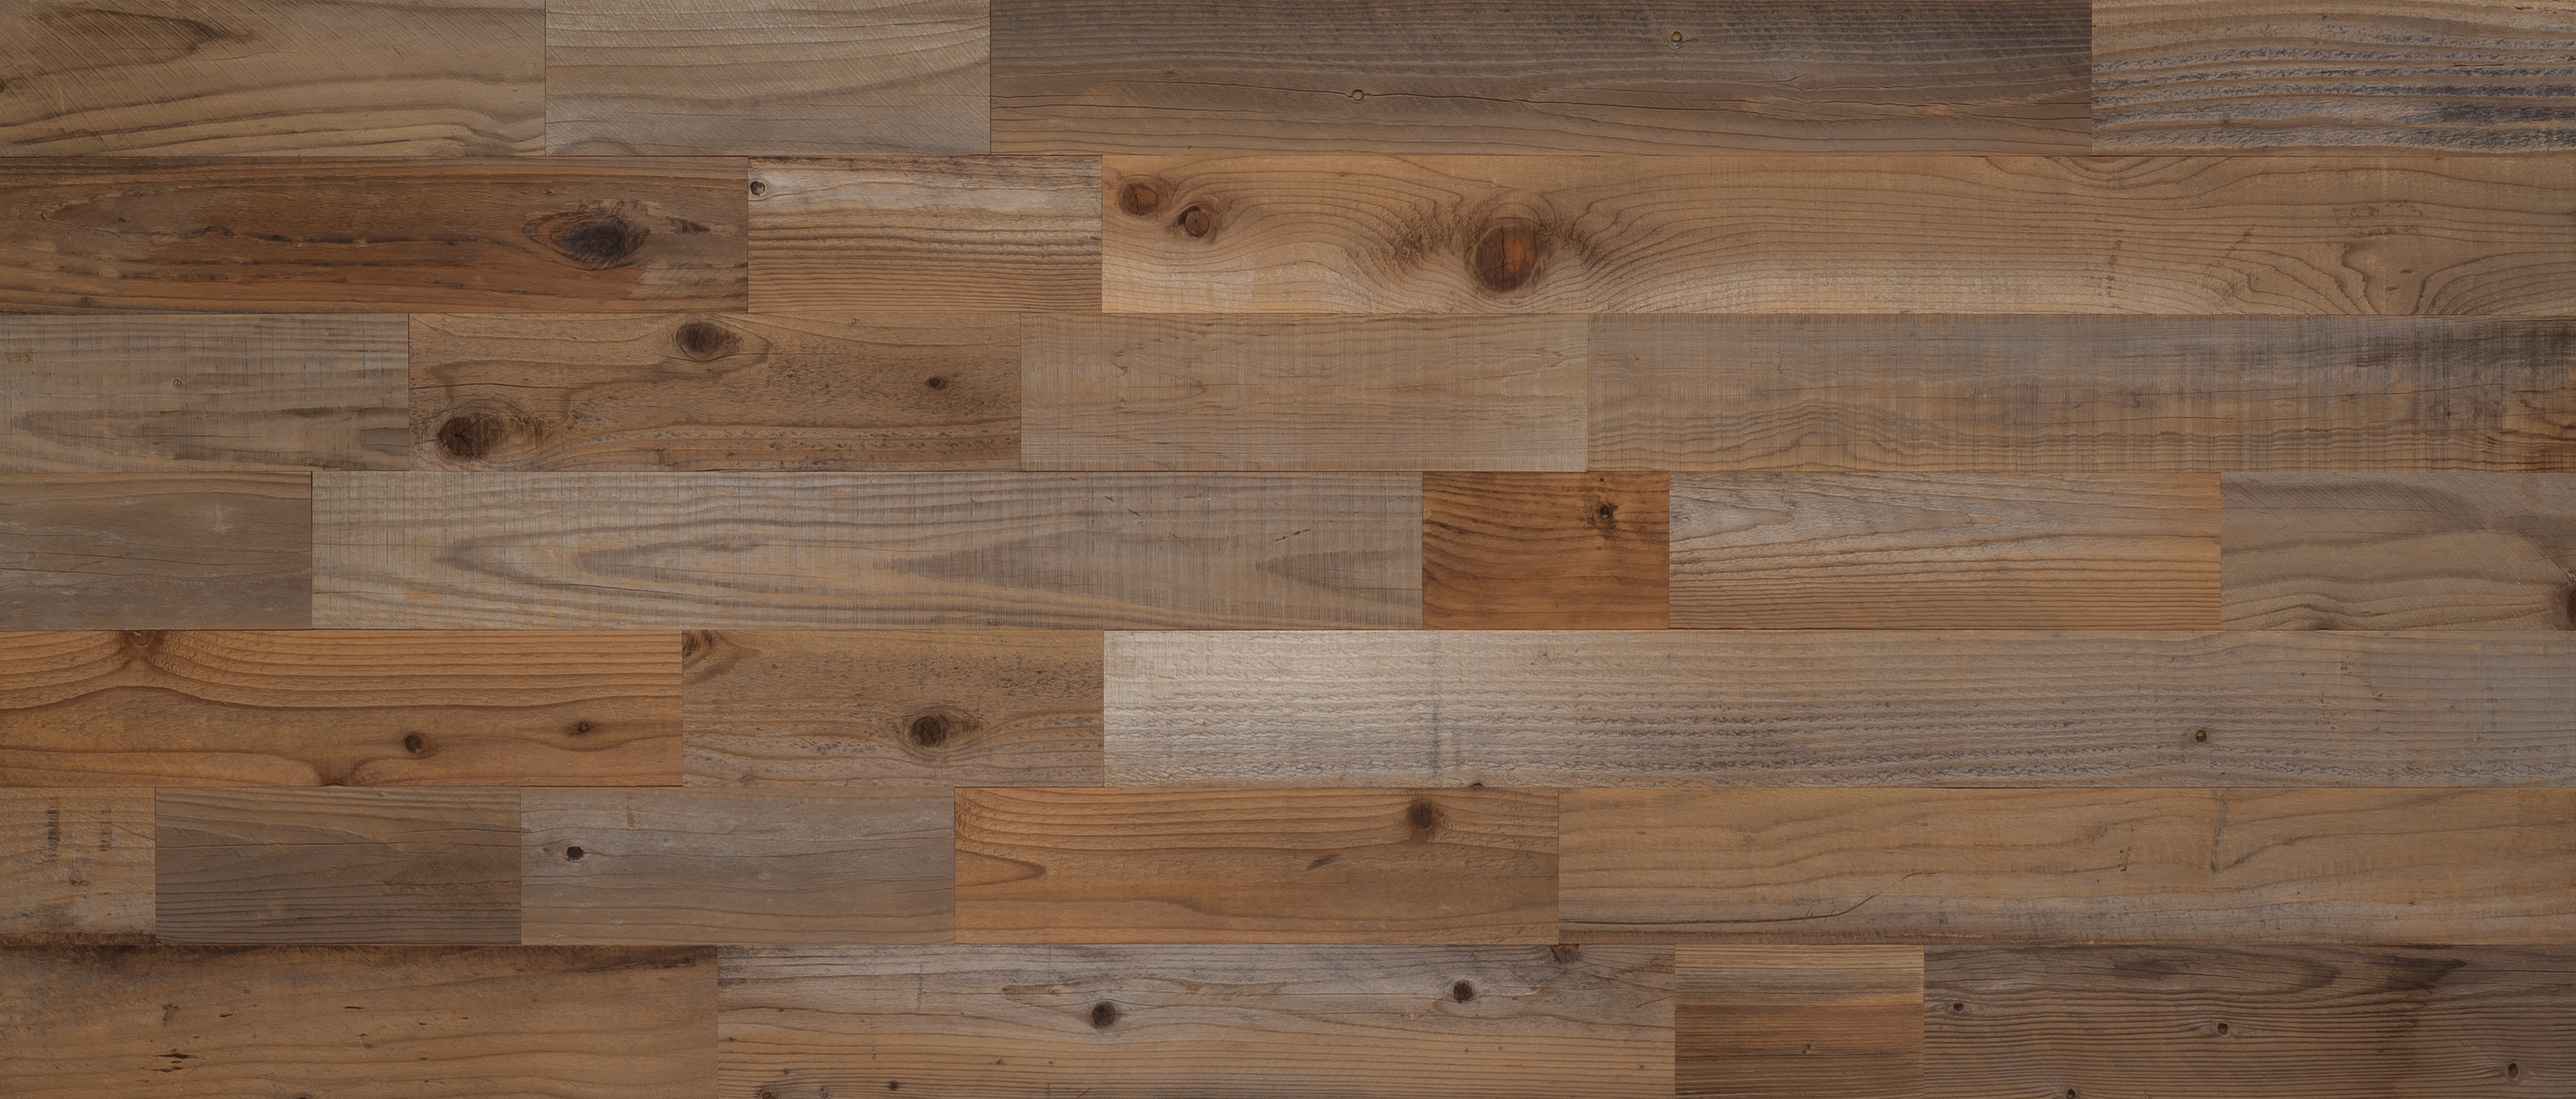 Stikwood Reclaimed Sierra Silver material explorer | real reclaimed redwood and cedar peel and stick wood wall and ceiling planks with brown, red, silver, gray and gold colors.